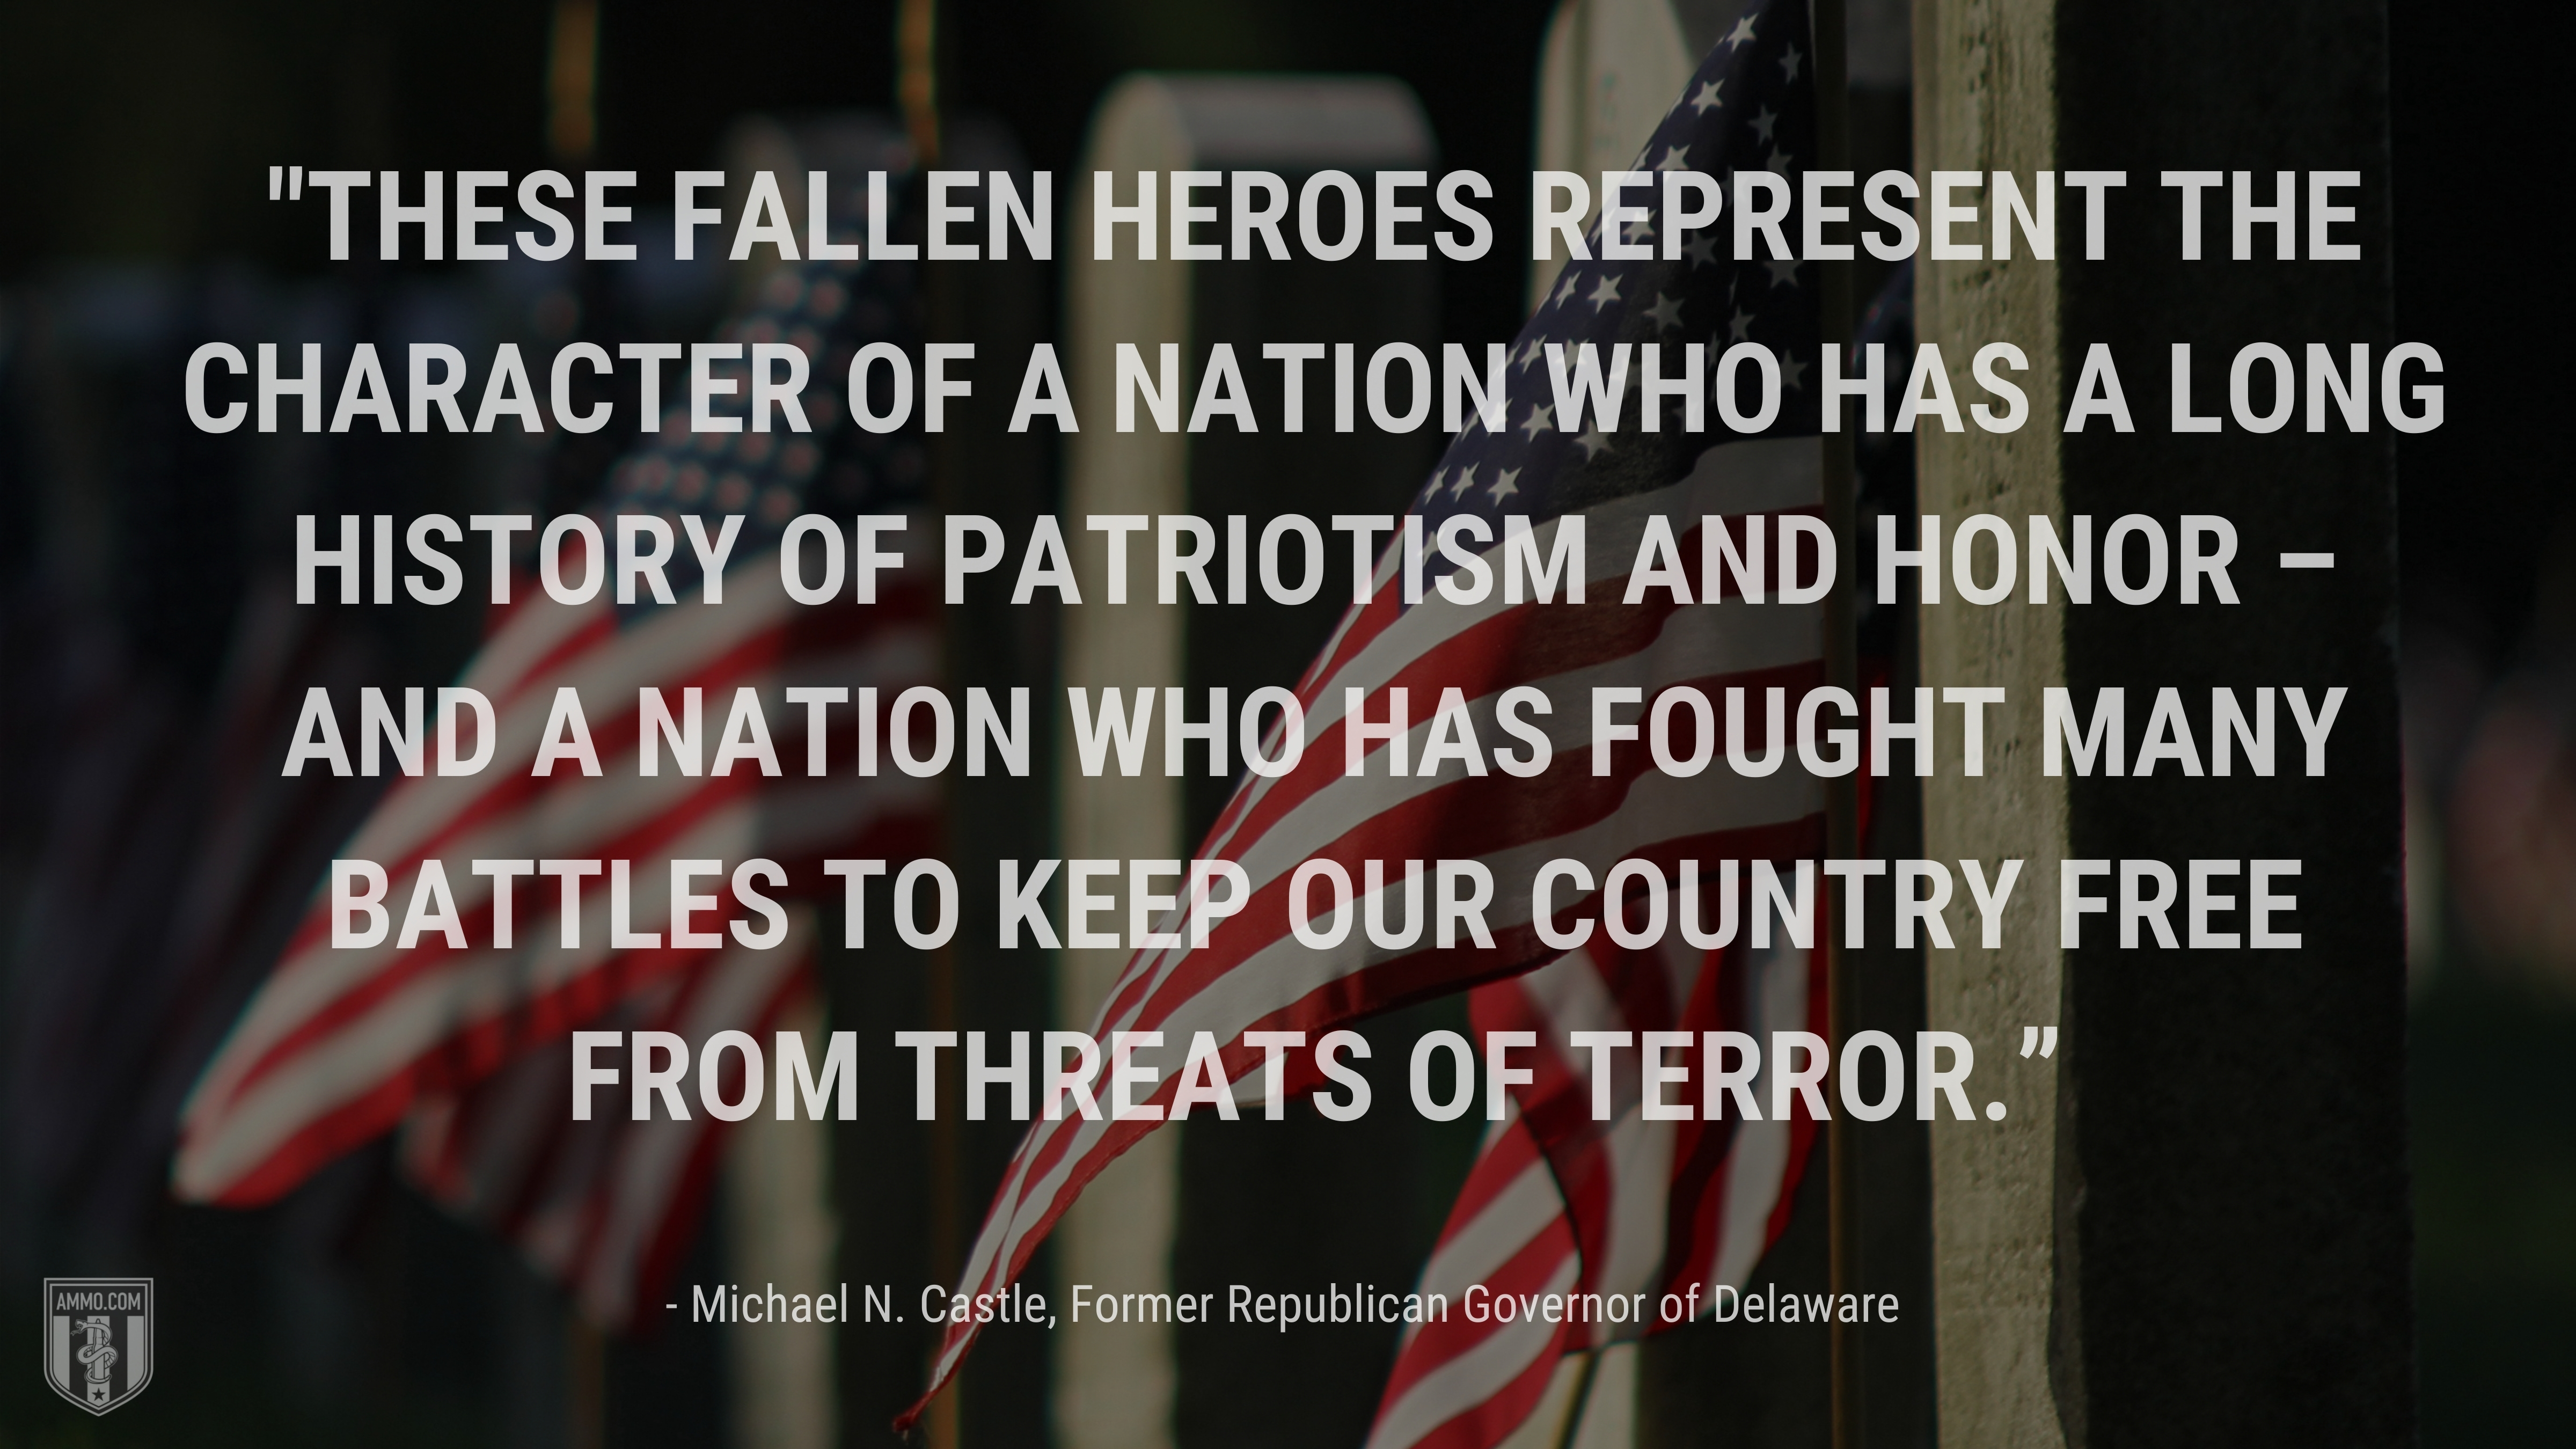 """""""These fallen heroes represent the character of a nation who has a long history of patriotism and honor – and a nation who has fought many battles to keep our country free from threats of terror."""" - Michael N. Castle, Former Republican Governor of Delaware"""